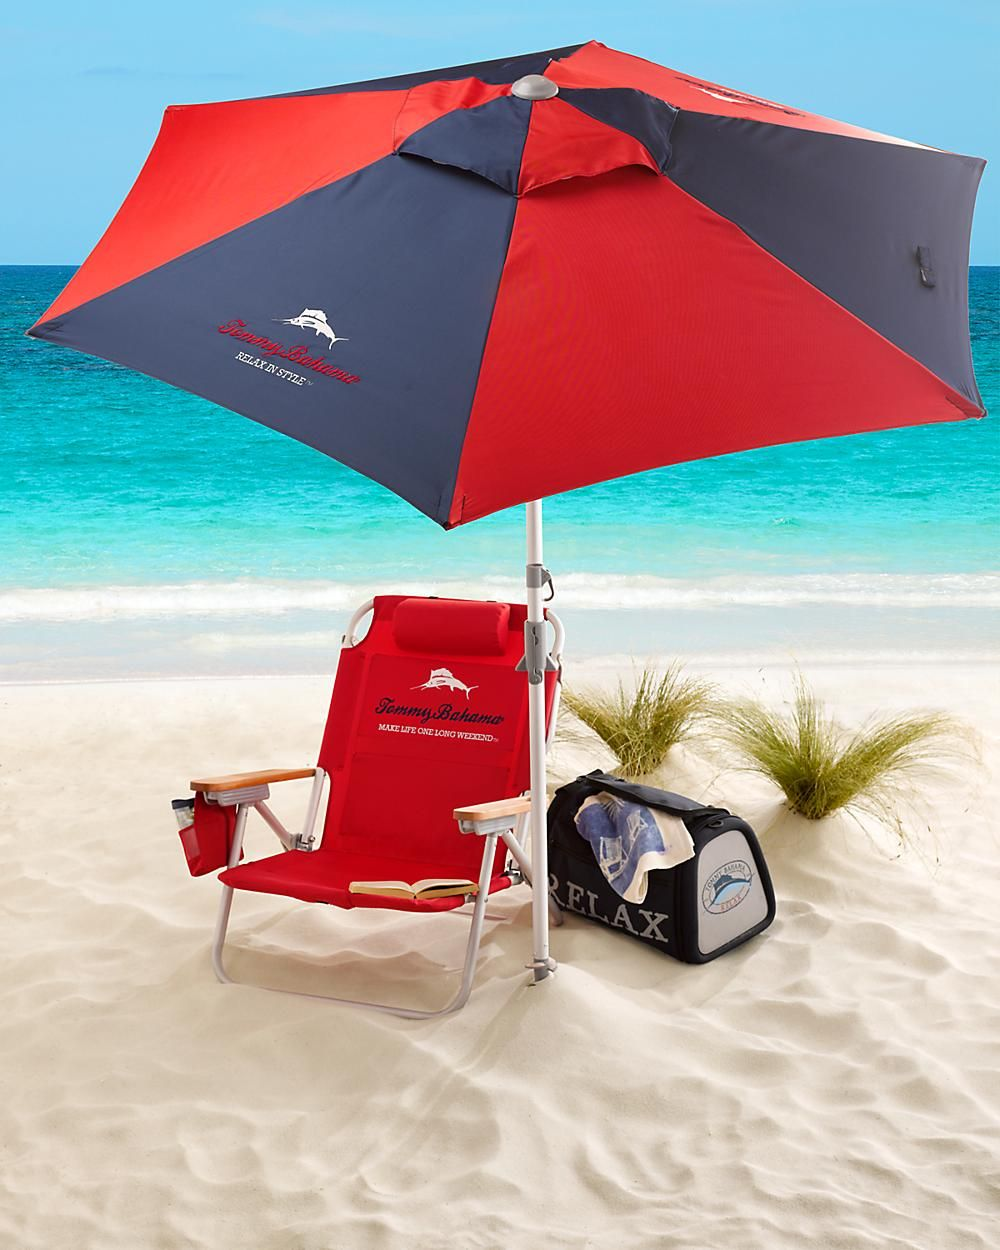 Tommy Bahama bech chair & maybe umbrella too?!?awesome